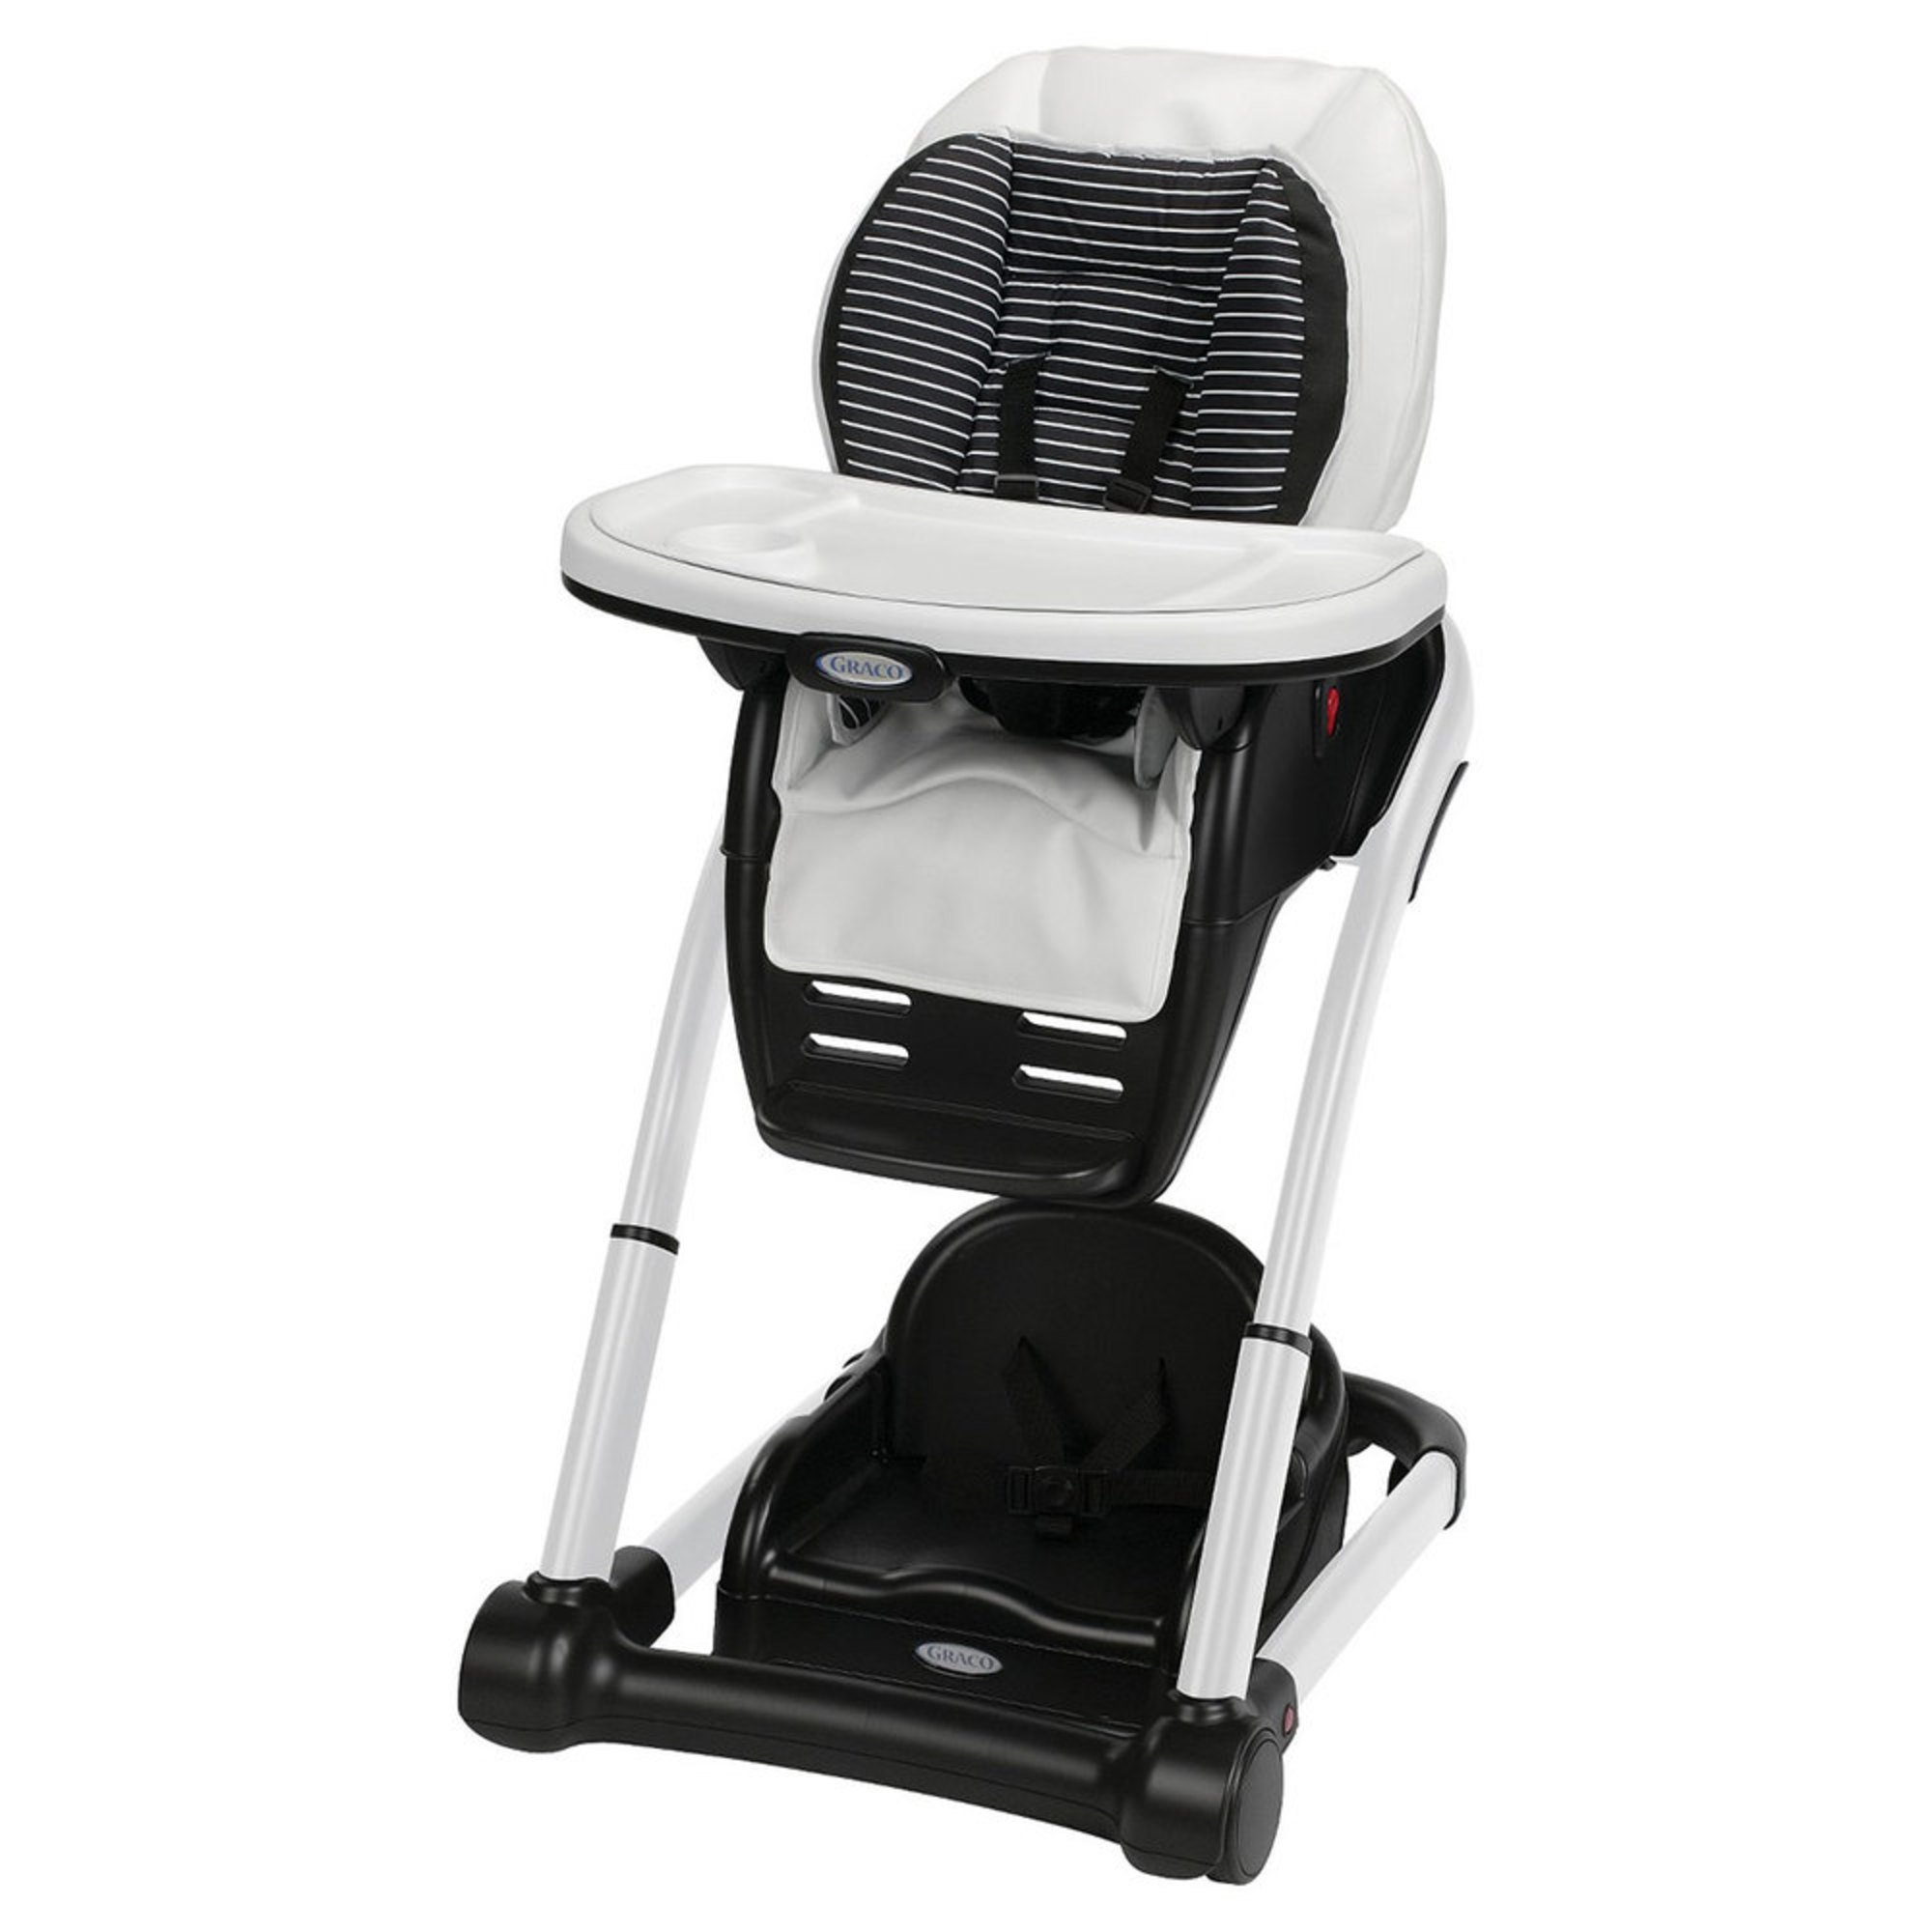 graco blossom 4 in 1 convertible highchair studio high